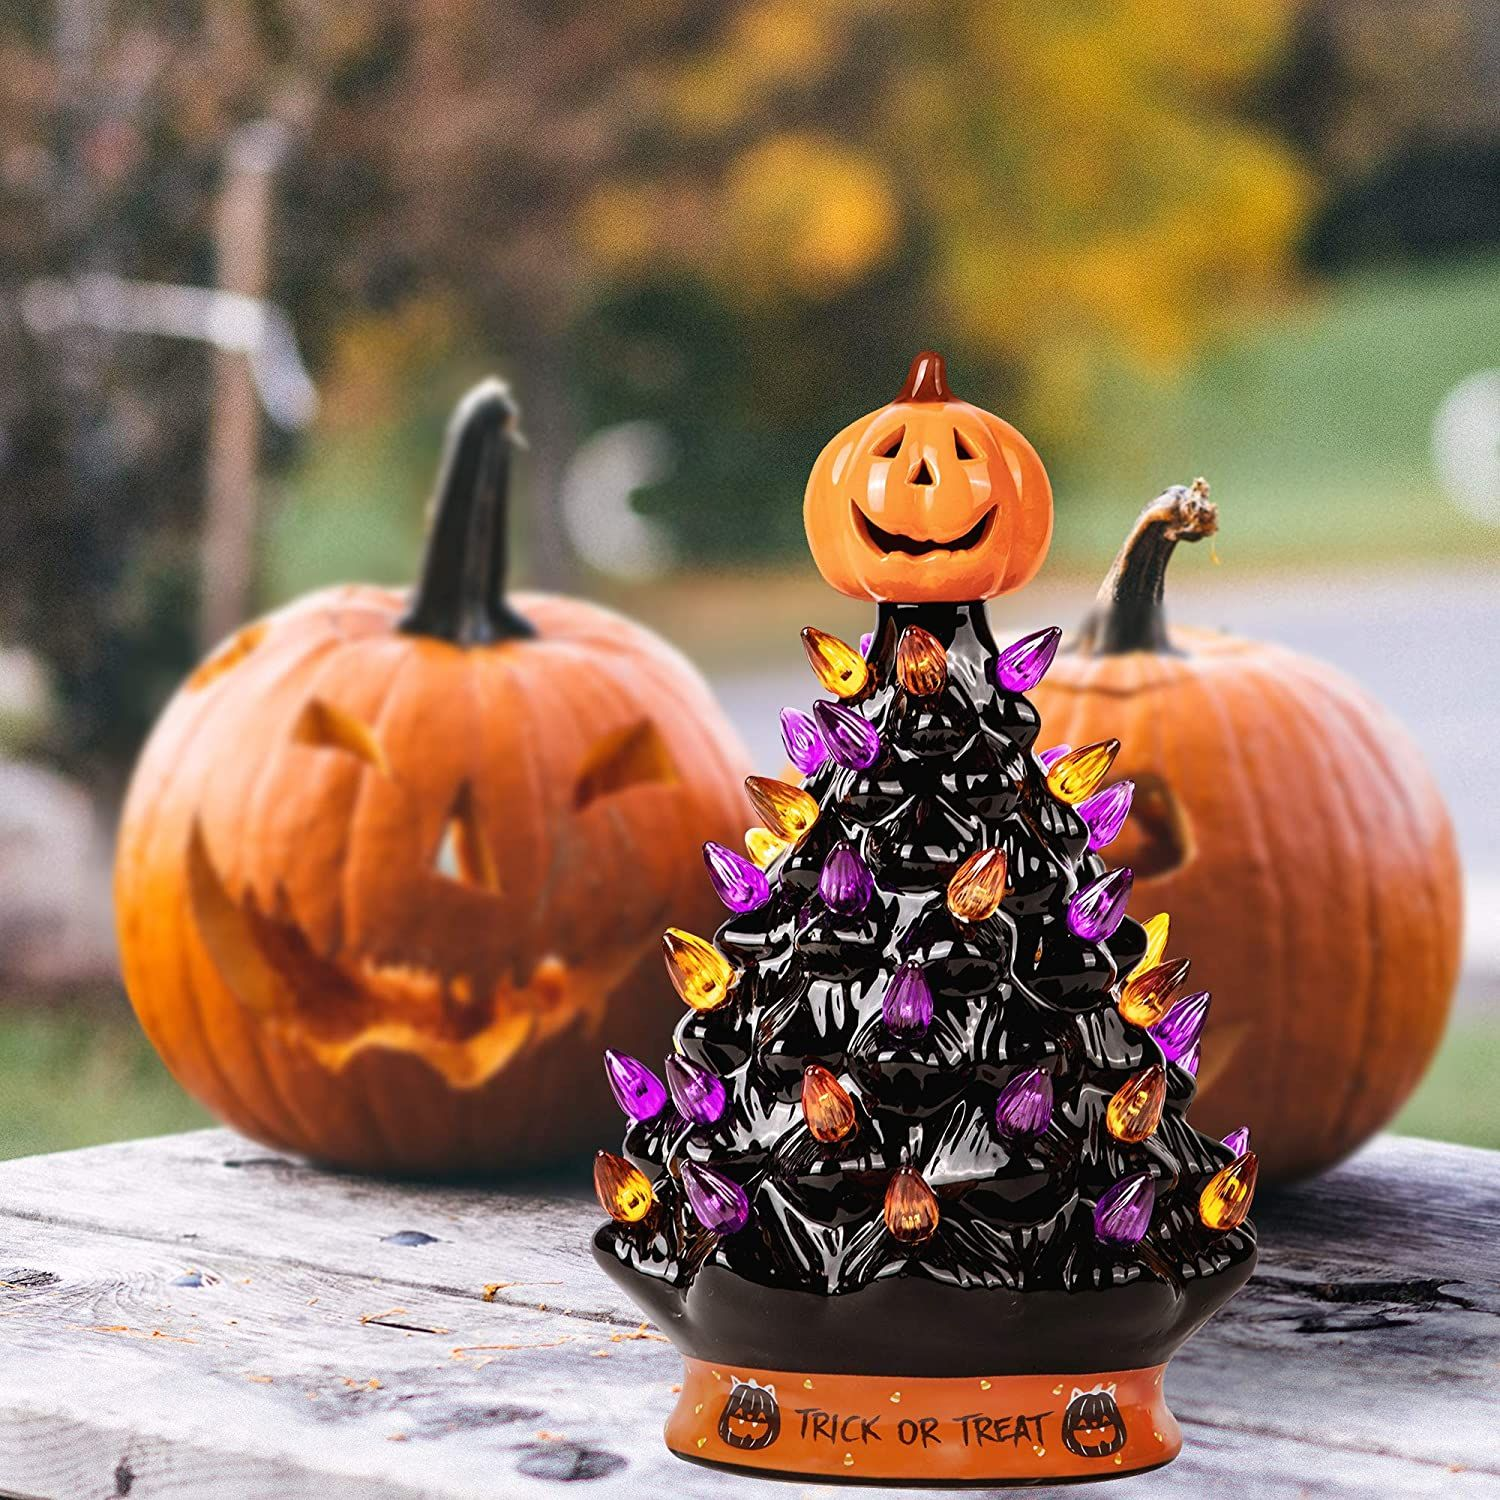 Amazon's Ceramic Halloween Tree Is Back In Stock—But Not for Long